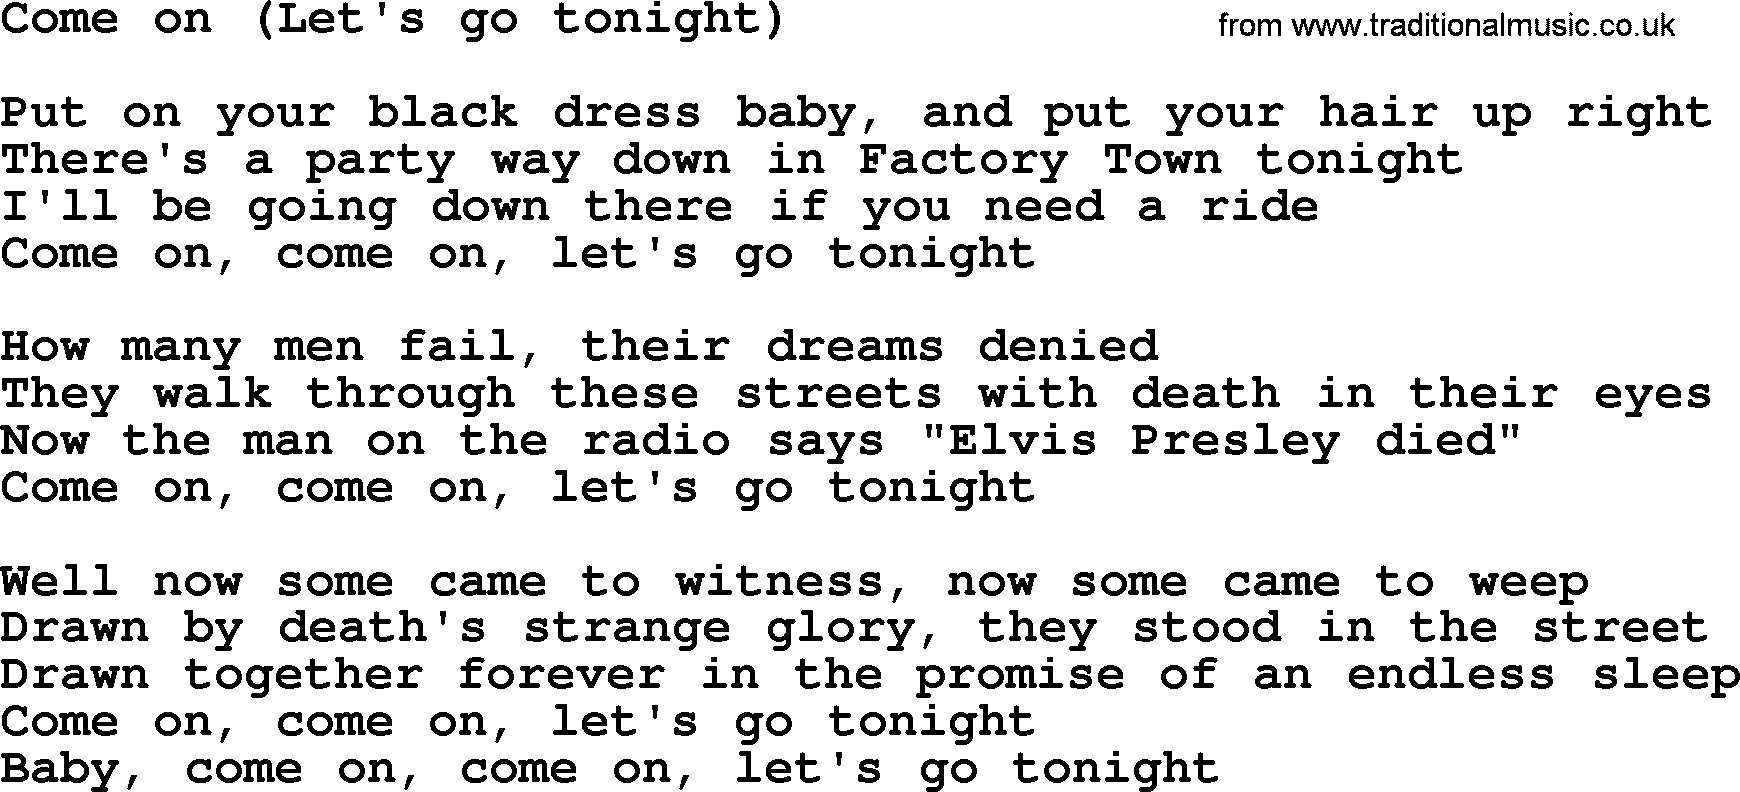 Bruce Springsteen Song Come Onlets Go Tonight Lyrics